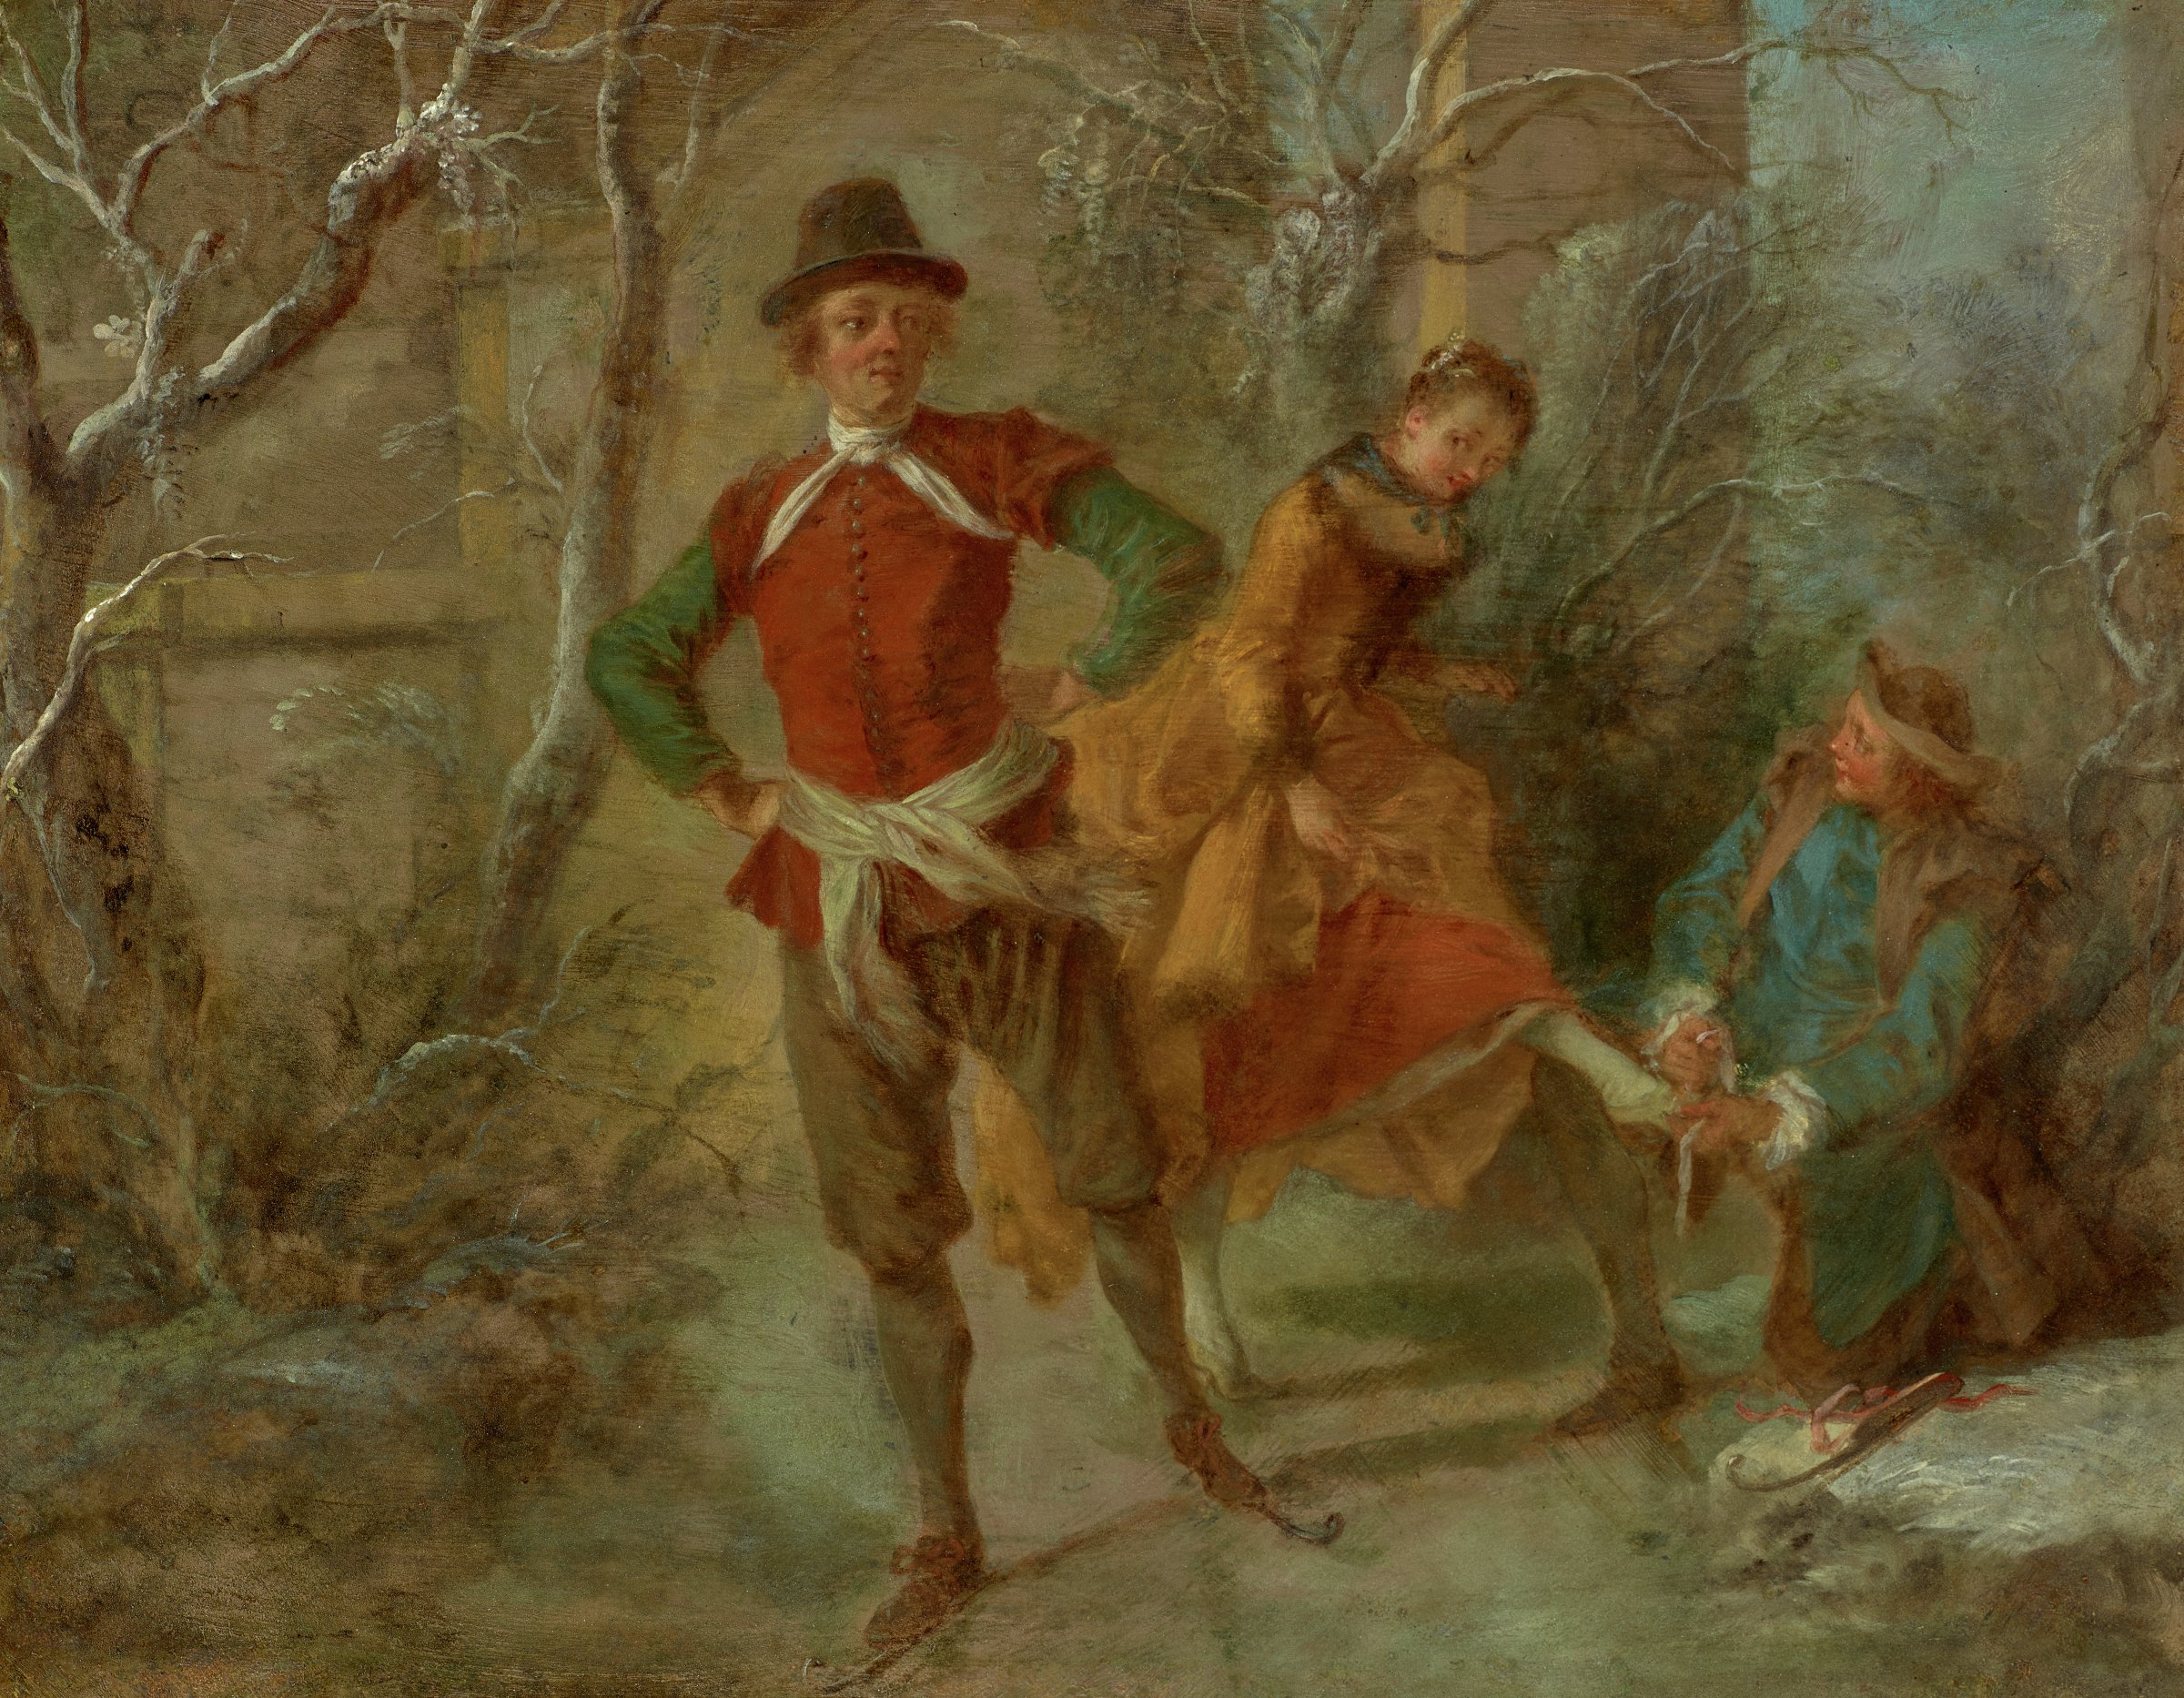 Allegory of Winter, Nicolas Lancret, oil on copper